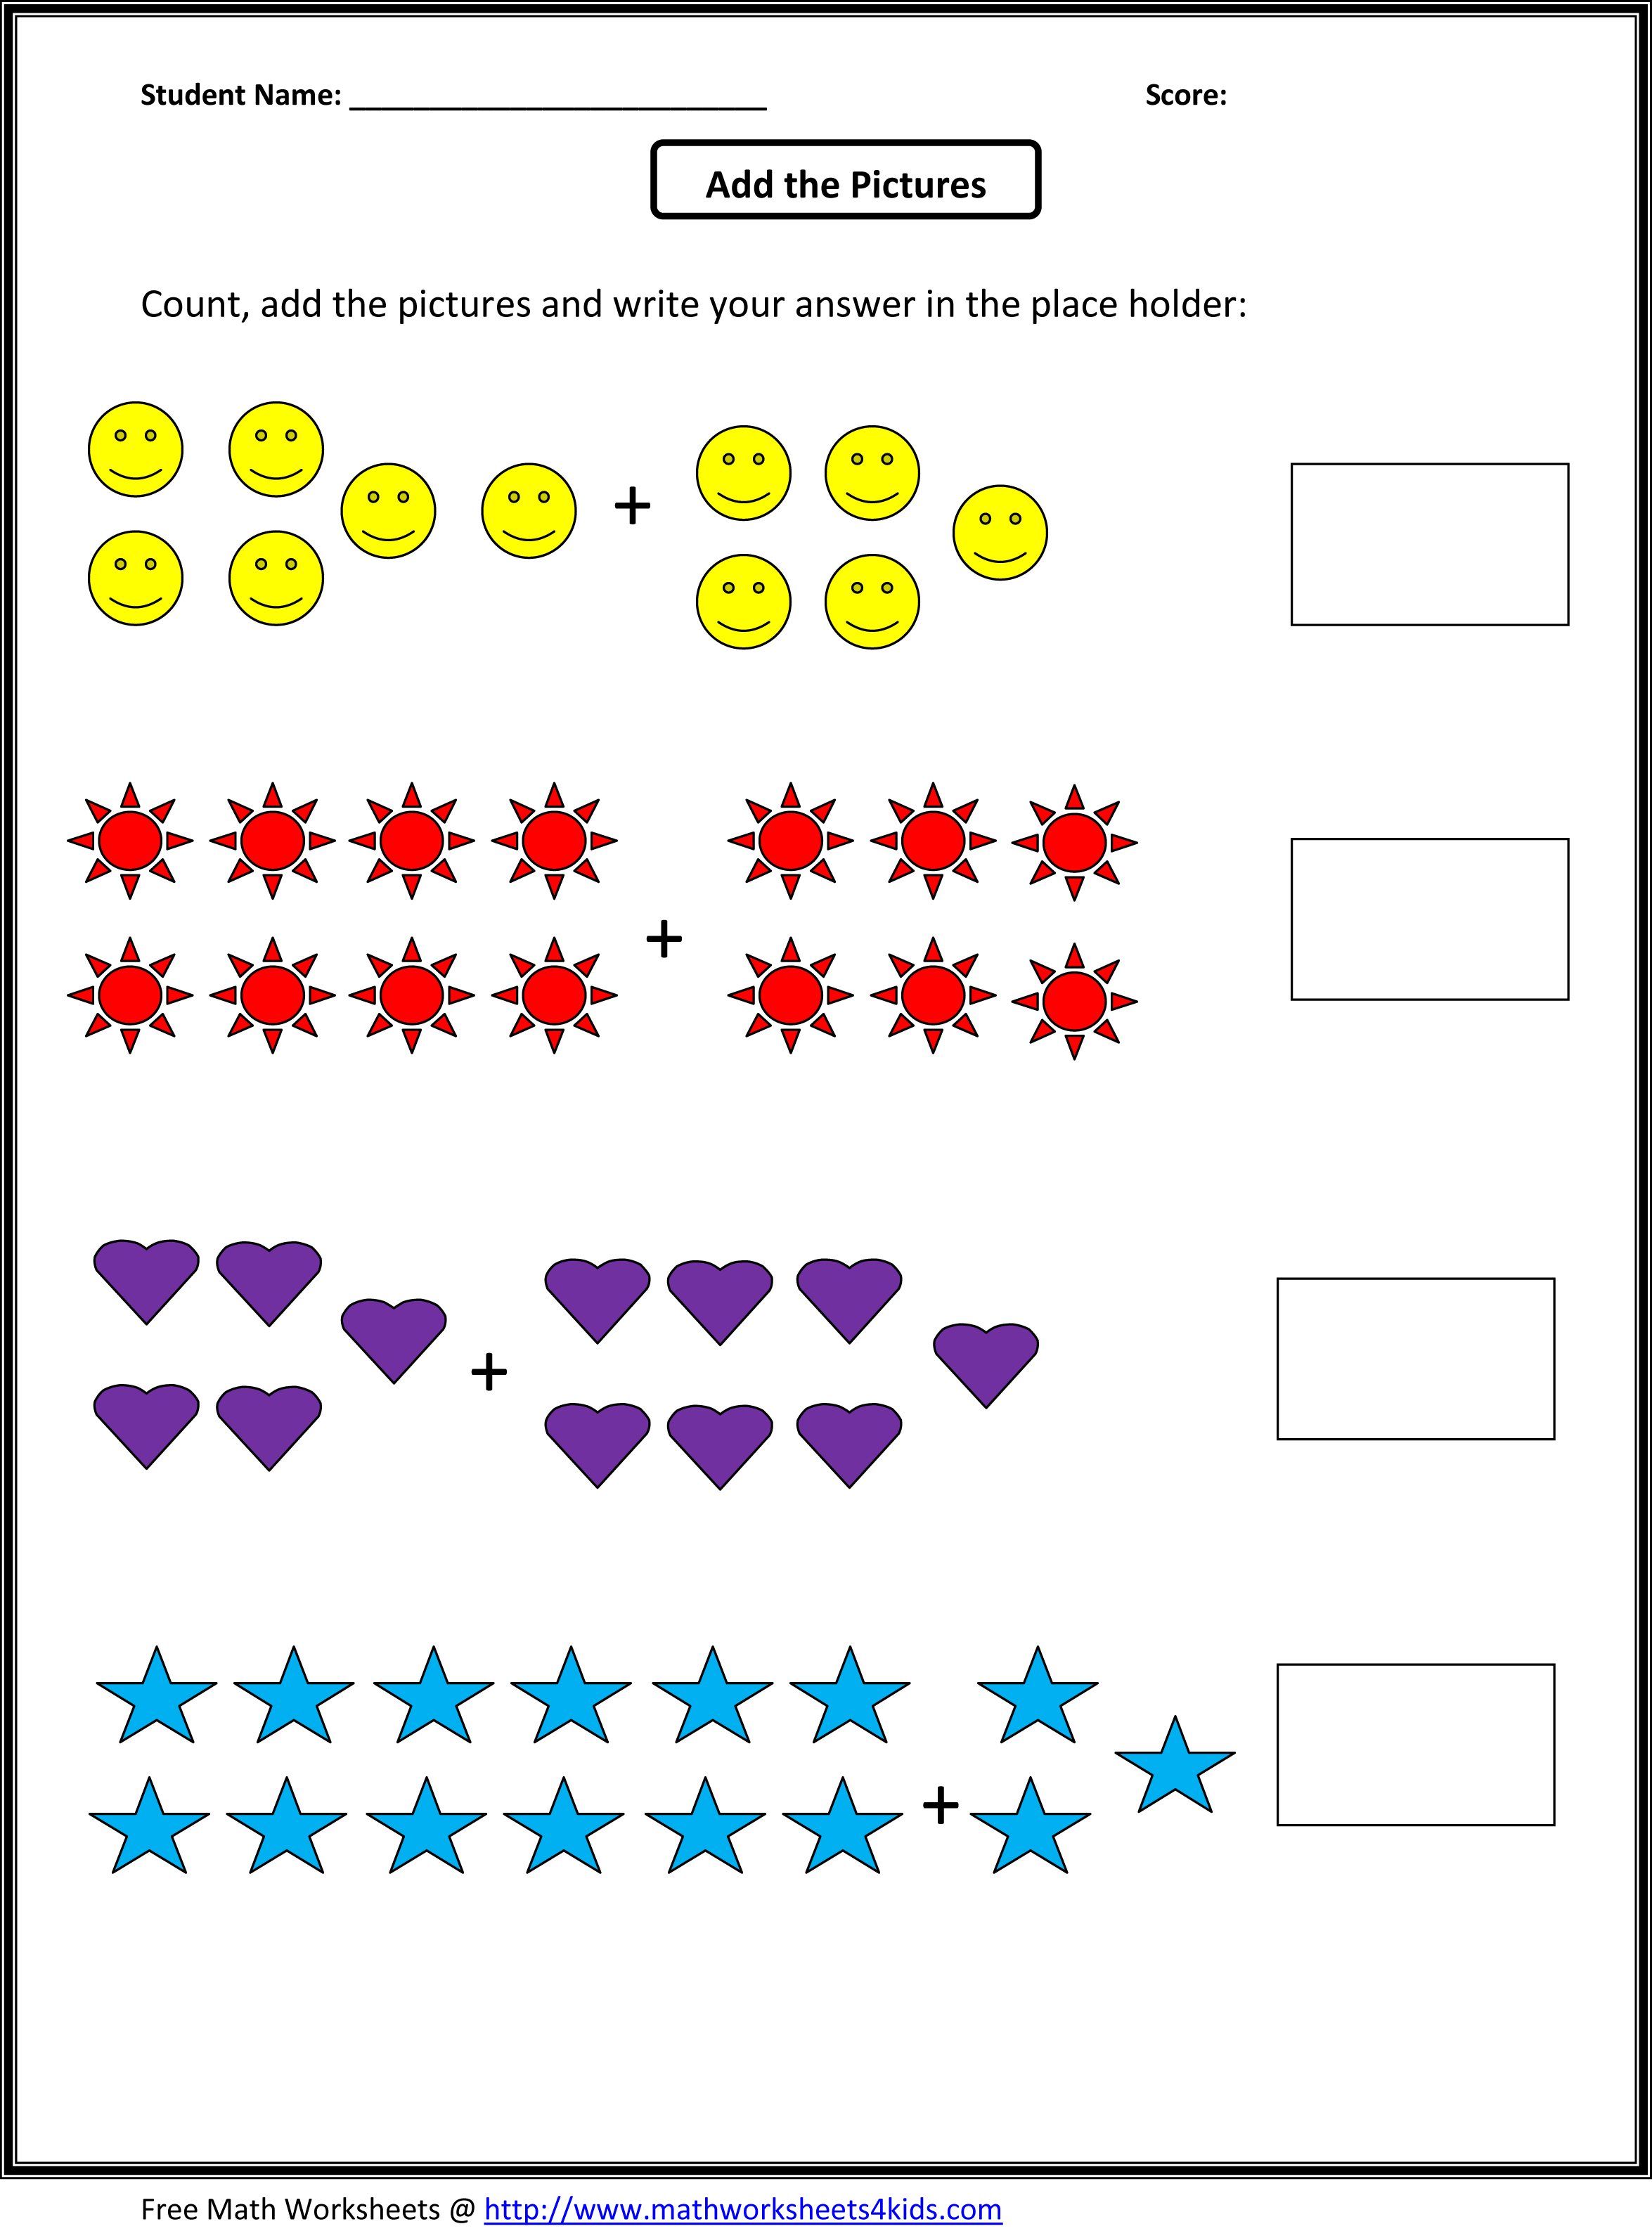 Weirdmailus  Outstanding Grade  Maths Worksheet  Reocurent With Entrancing Math Worksheets For St Grade Free  Reocurent With Awesome Fun Second Grade Worksheets Also Reference Worksheet In Addition Abc Tracing Worksheets For Preschool And Pillars Of Islam Worksheet As Well As Identifying Subject And Verb Worksheets Additionally Percent Concentration Worksheet From Reocurentcom With Weirdmailus  Entrancing Grade  Maths Worksheet  Reocurent With Awesome Math Worksheets For St Grade Free  Reocurent And Outstanding Fun Second Grade Worksheets Also Reference Worksheet In Addition Abc Tracing Worksheets For Preschool From Reocurentcom